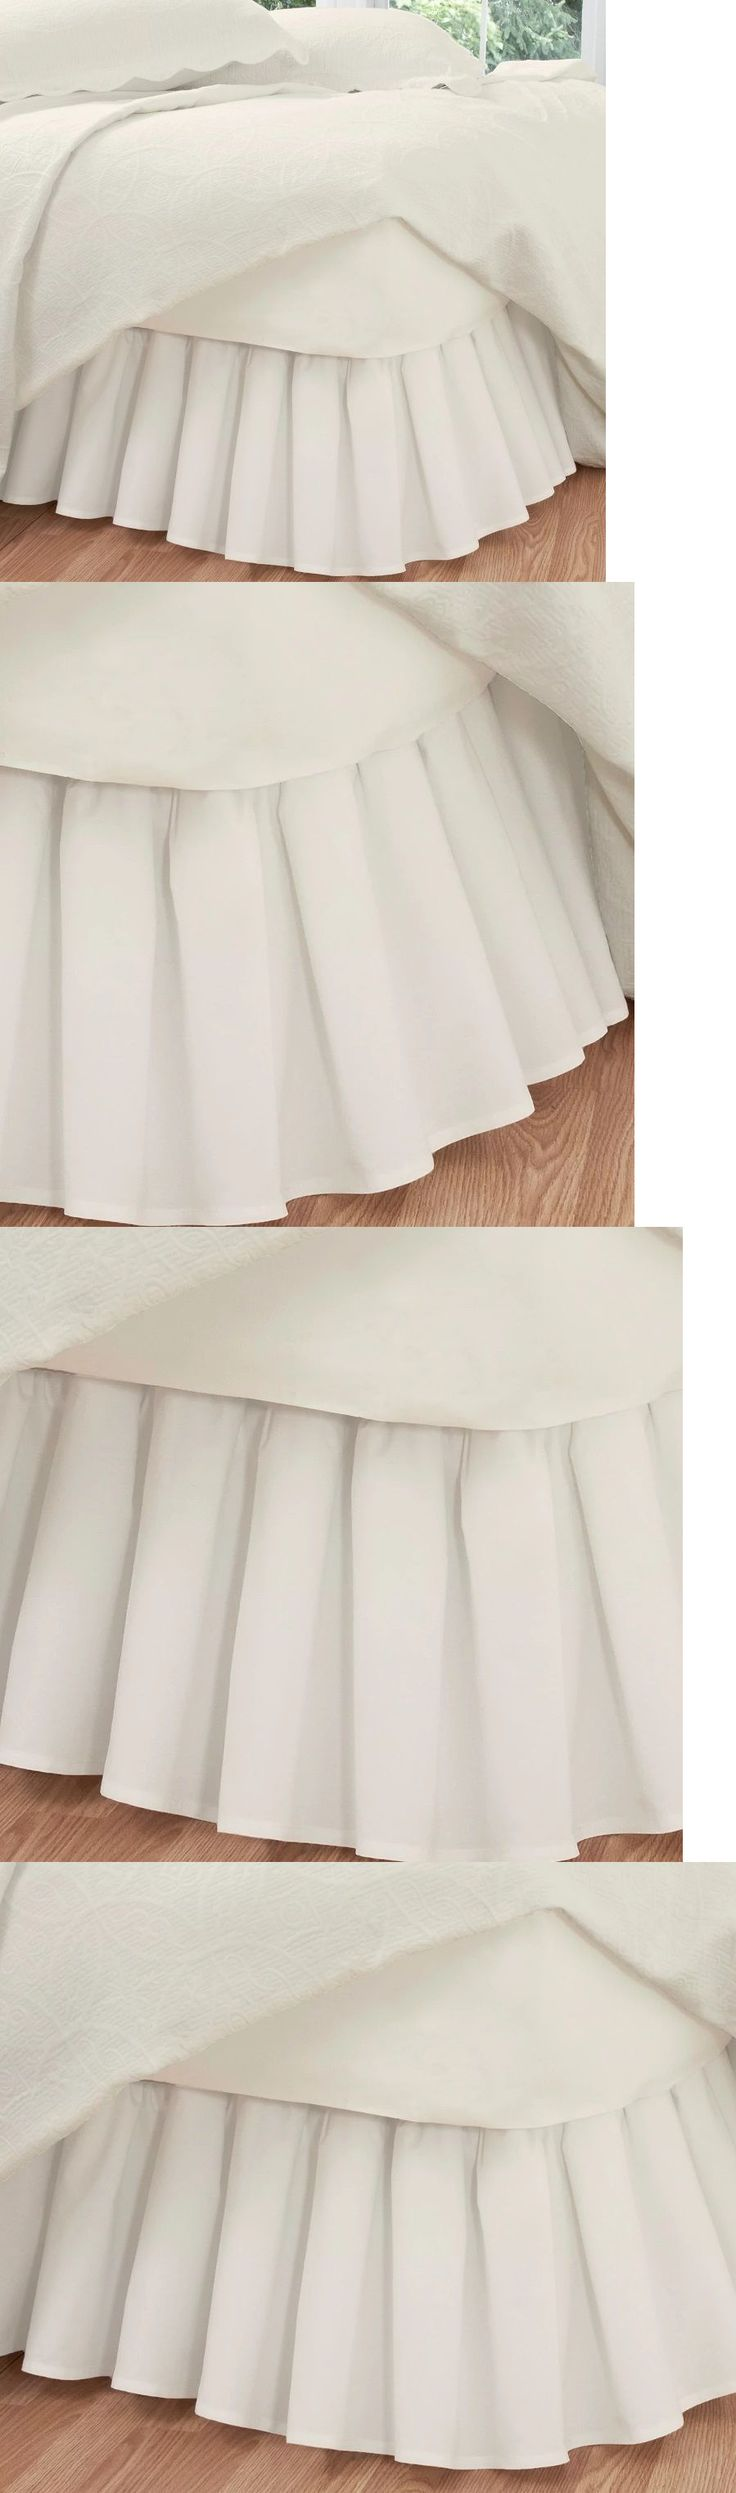 Bed Skirts 20450: Ruffled Ivory Bed Skirt Cal King Size Poplin 14 Inch Drop Cotton Polyester -> BUY IT NOW ONLY: $42.65 on eBay!